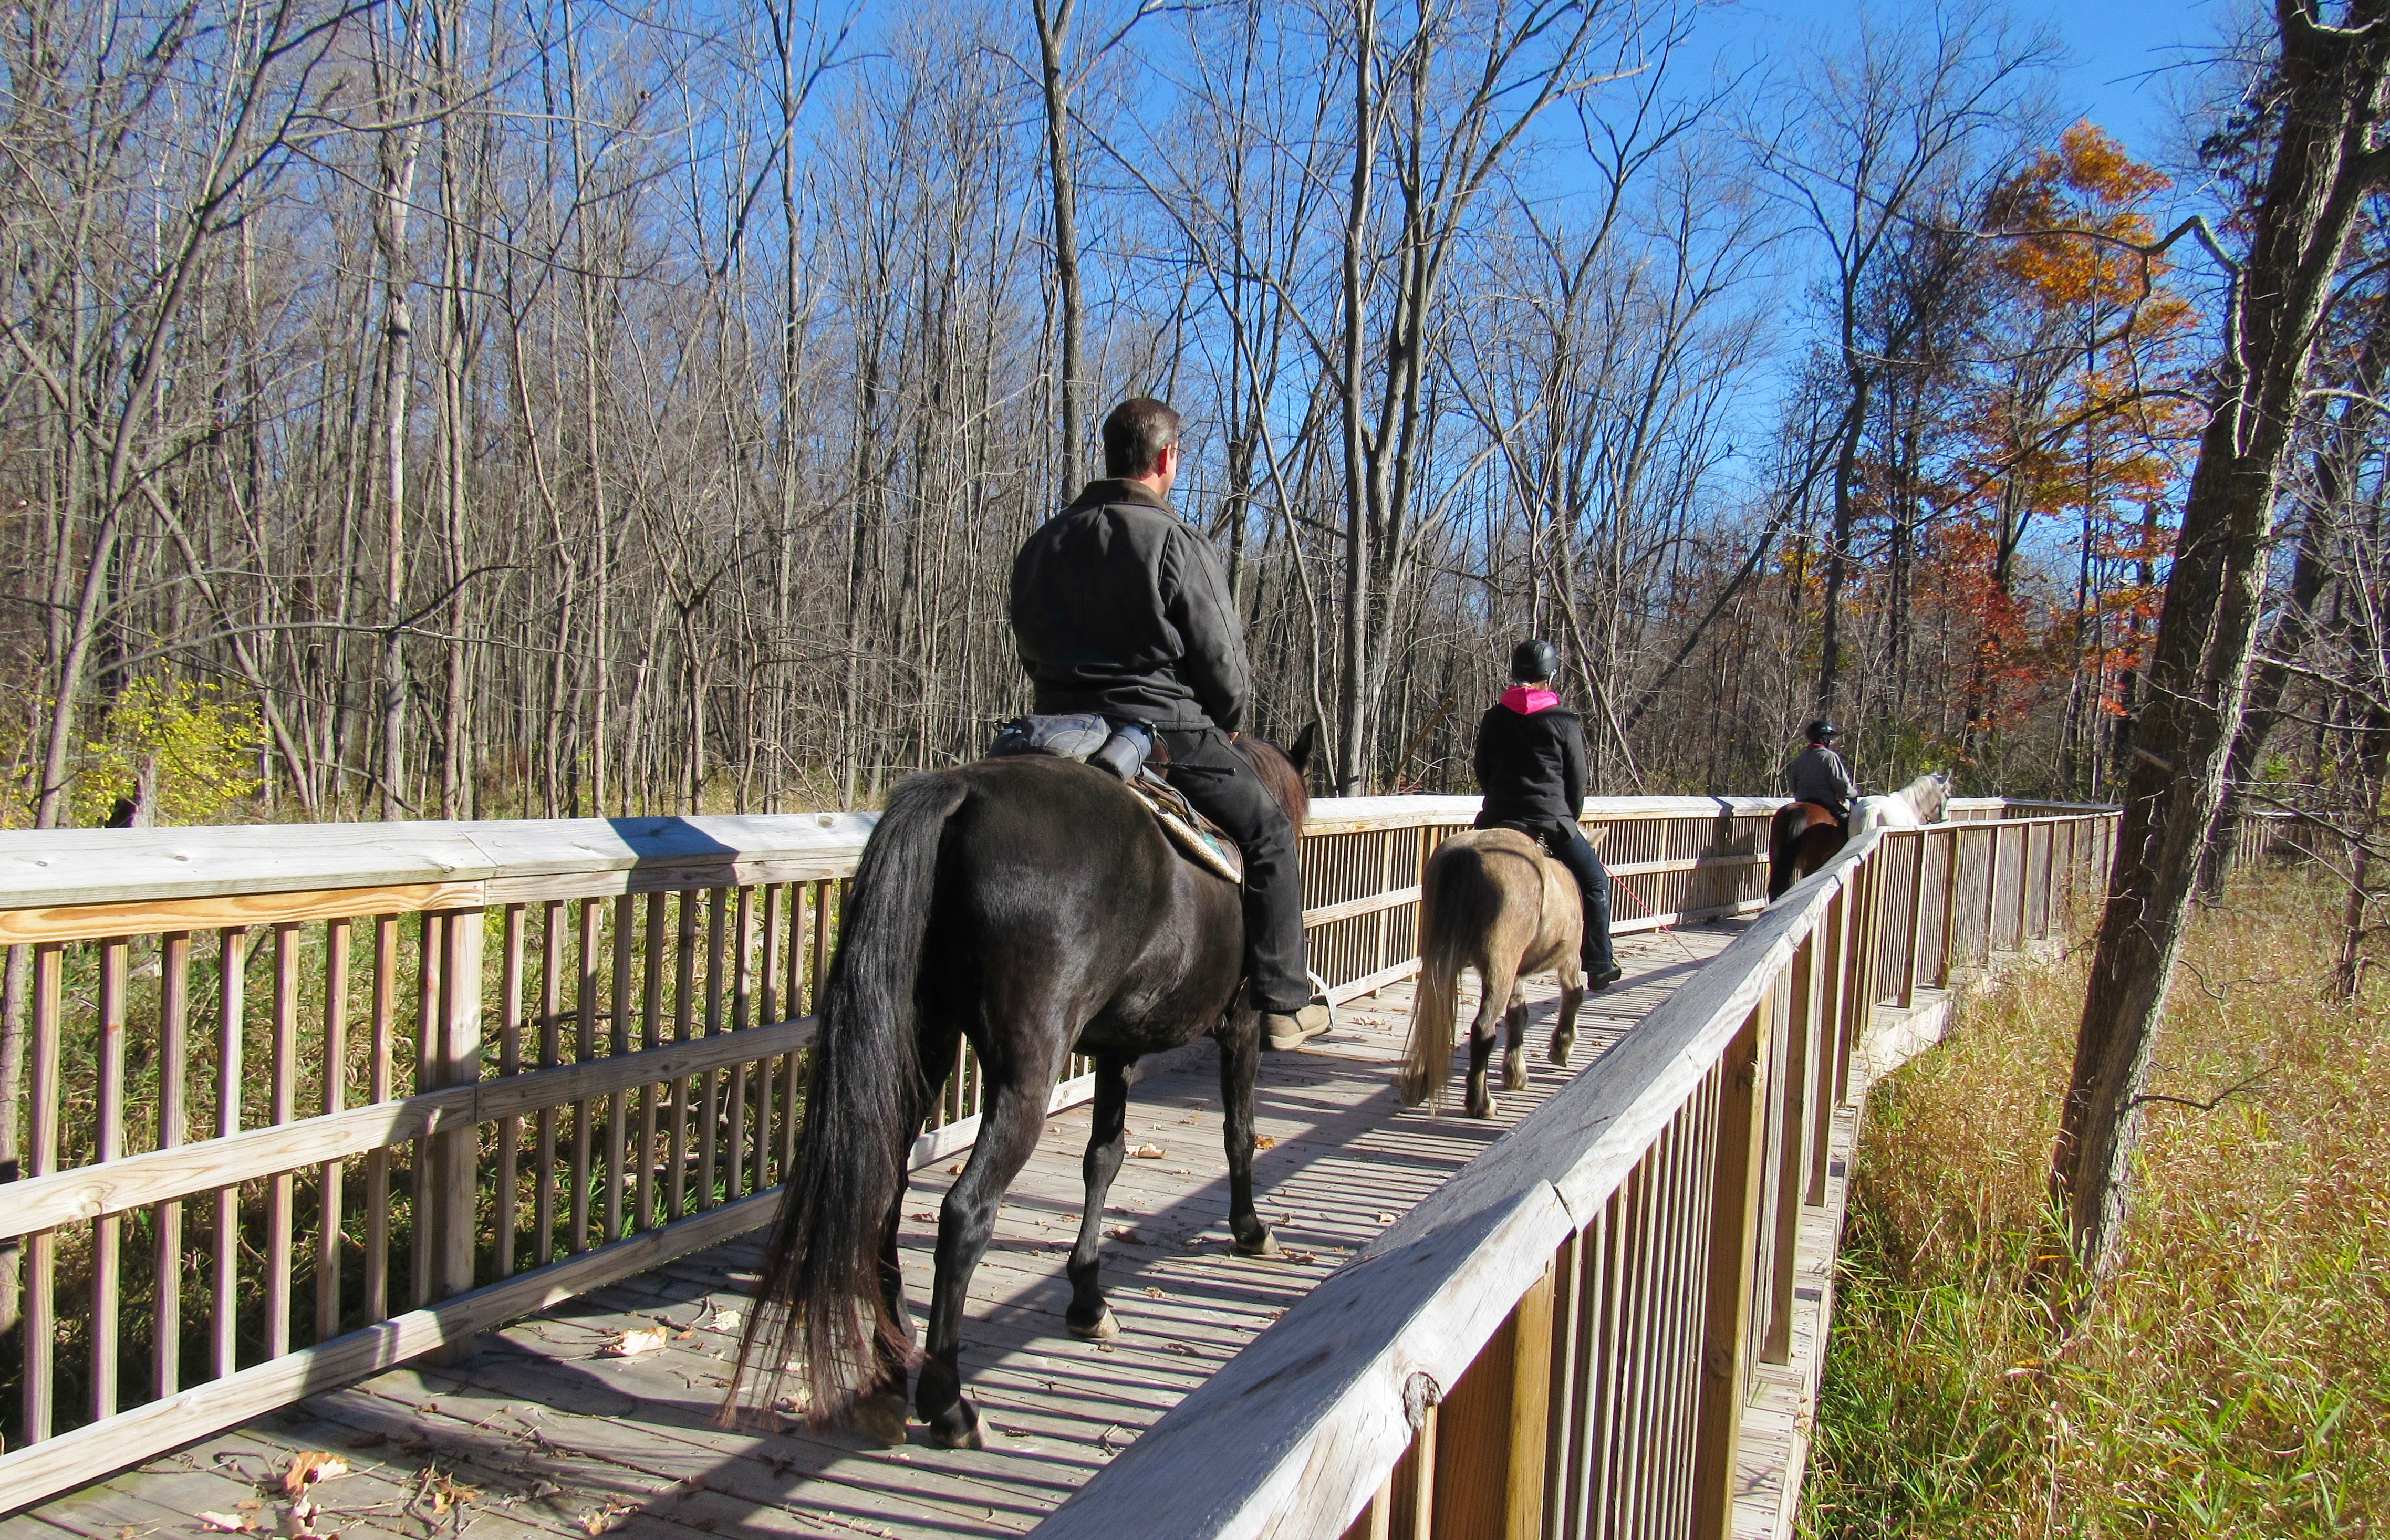 Michigan oakland county highland - Almost 7 000 Acres Of Parklands Are Managed By Oakland County Parks With Horse Friendly Trails At Addison Oaks County Park Addison Oaks East Highland Oaks